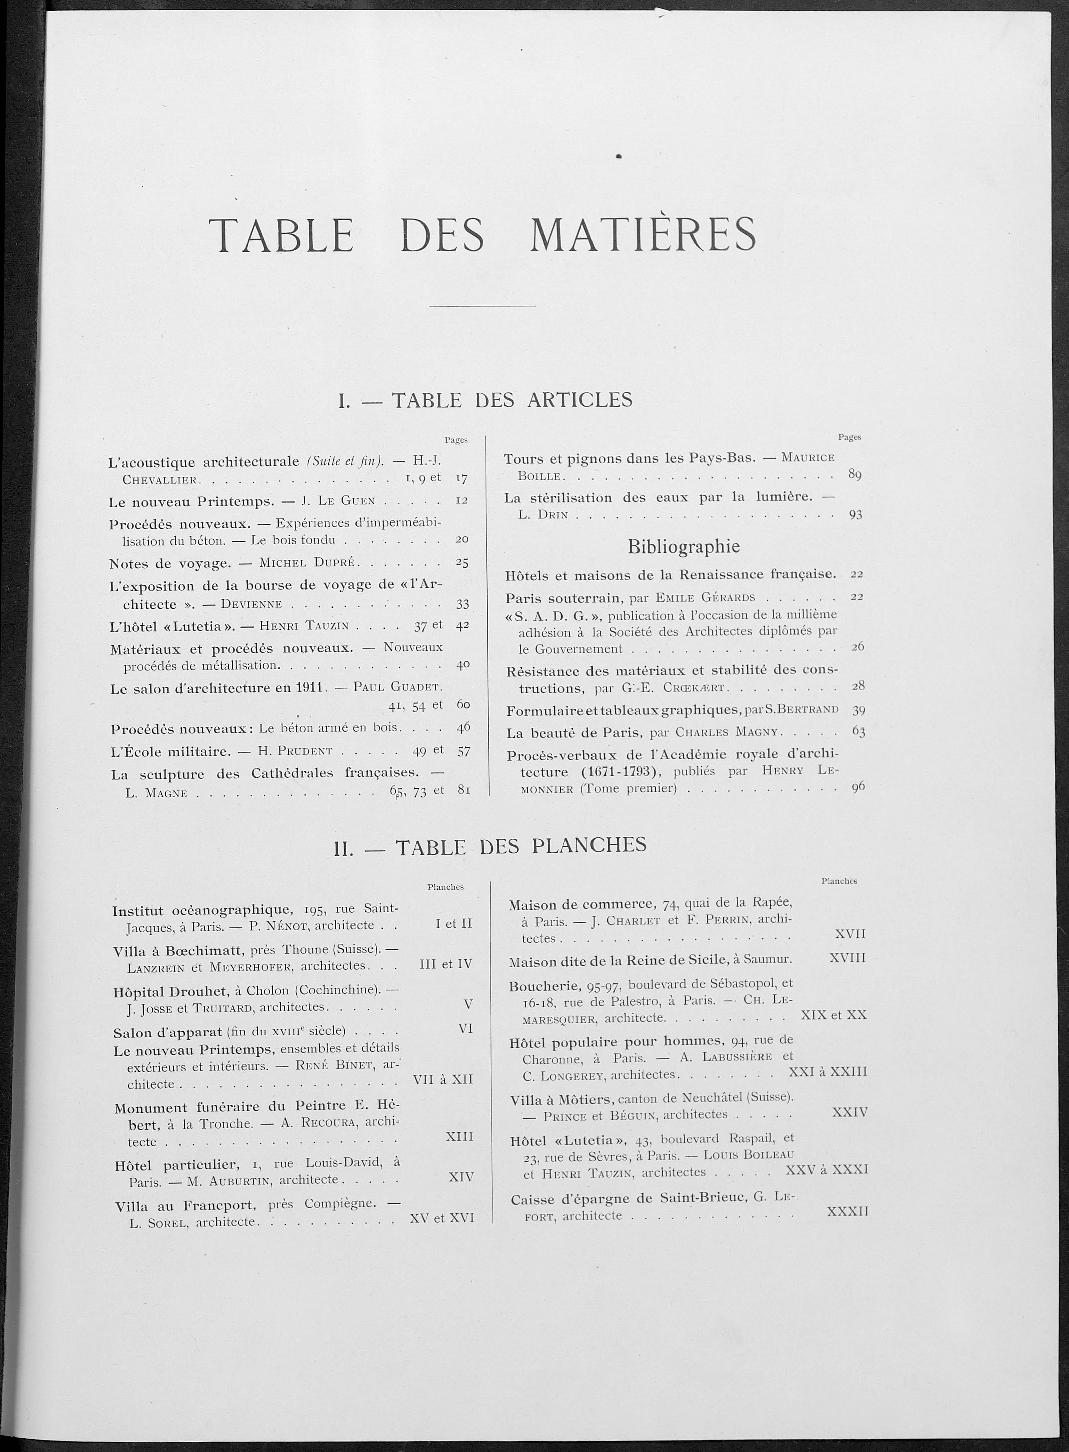 L'Architecte, Index, 1911 |